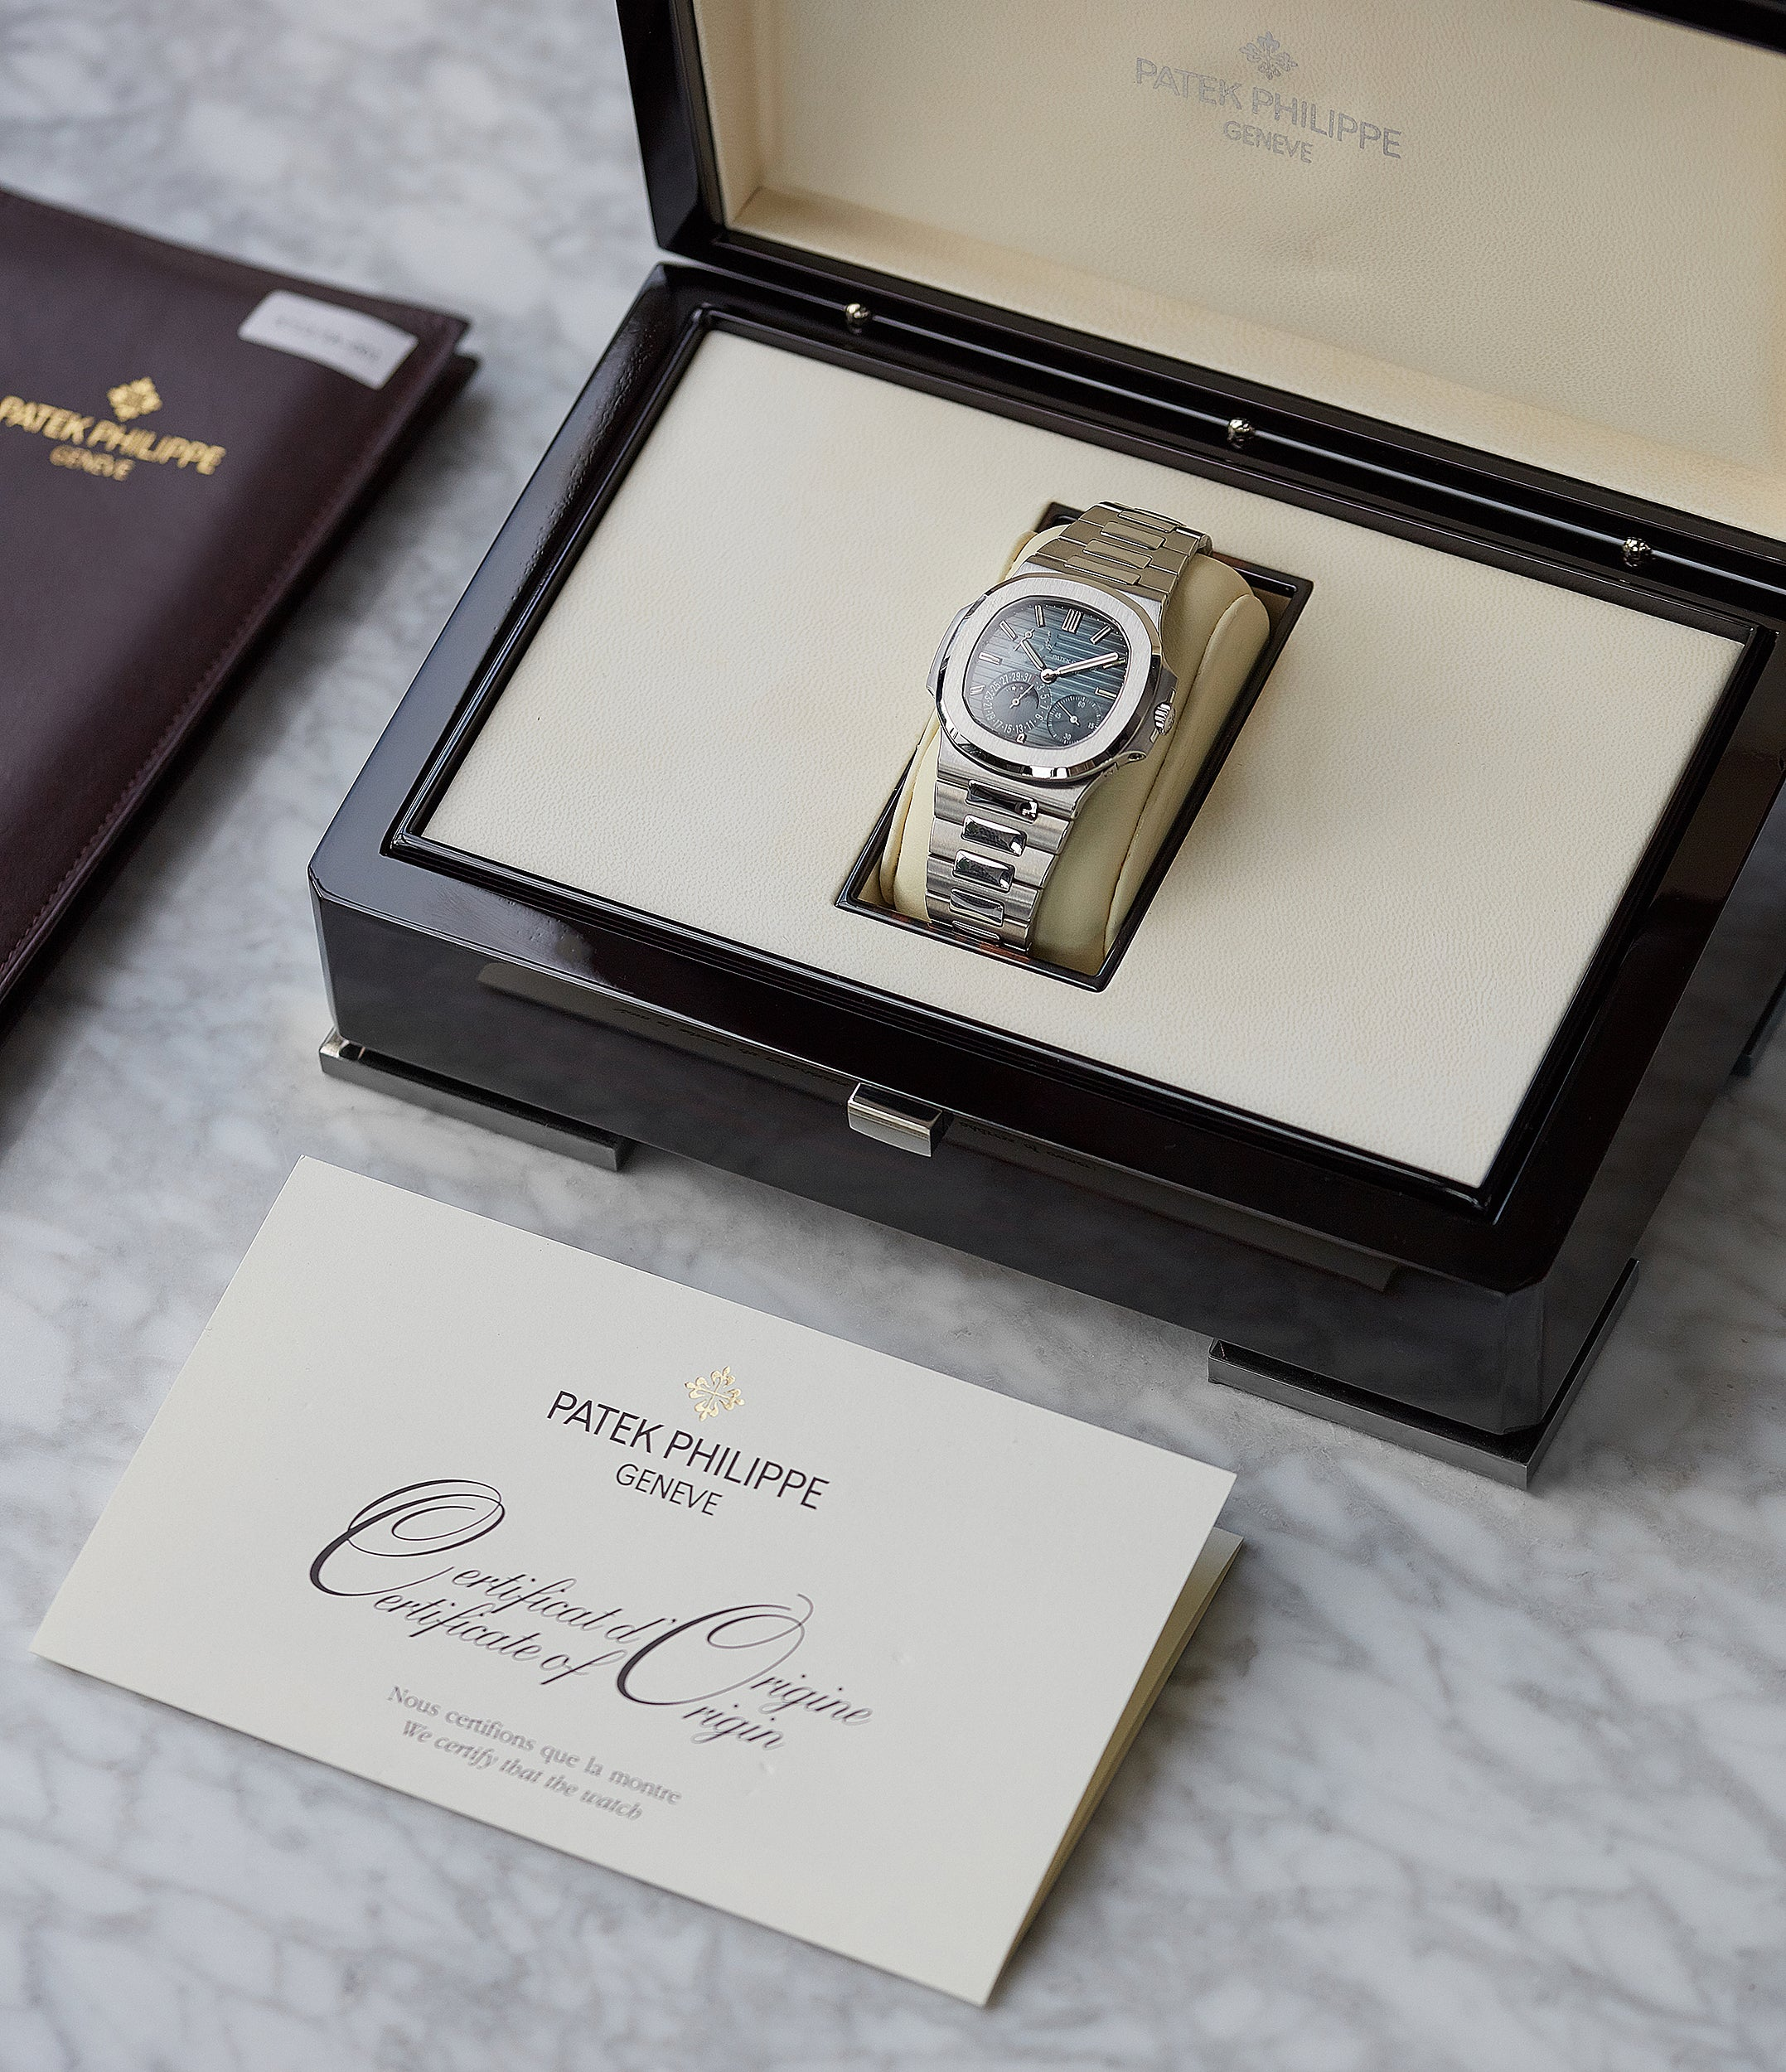 full set pre-owned Patek Philippe Nautilus Moon Phase 5712/1A-001 steel watch for sale online at A Collected Man London UK specialist of rare watches